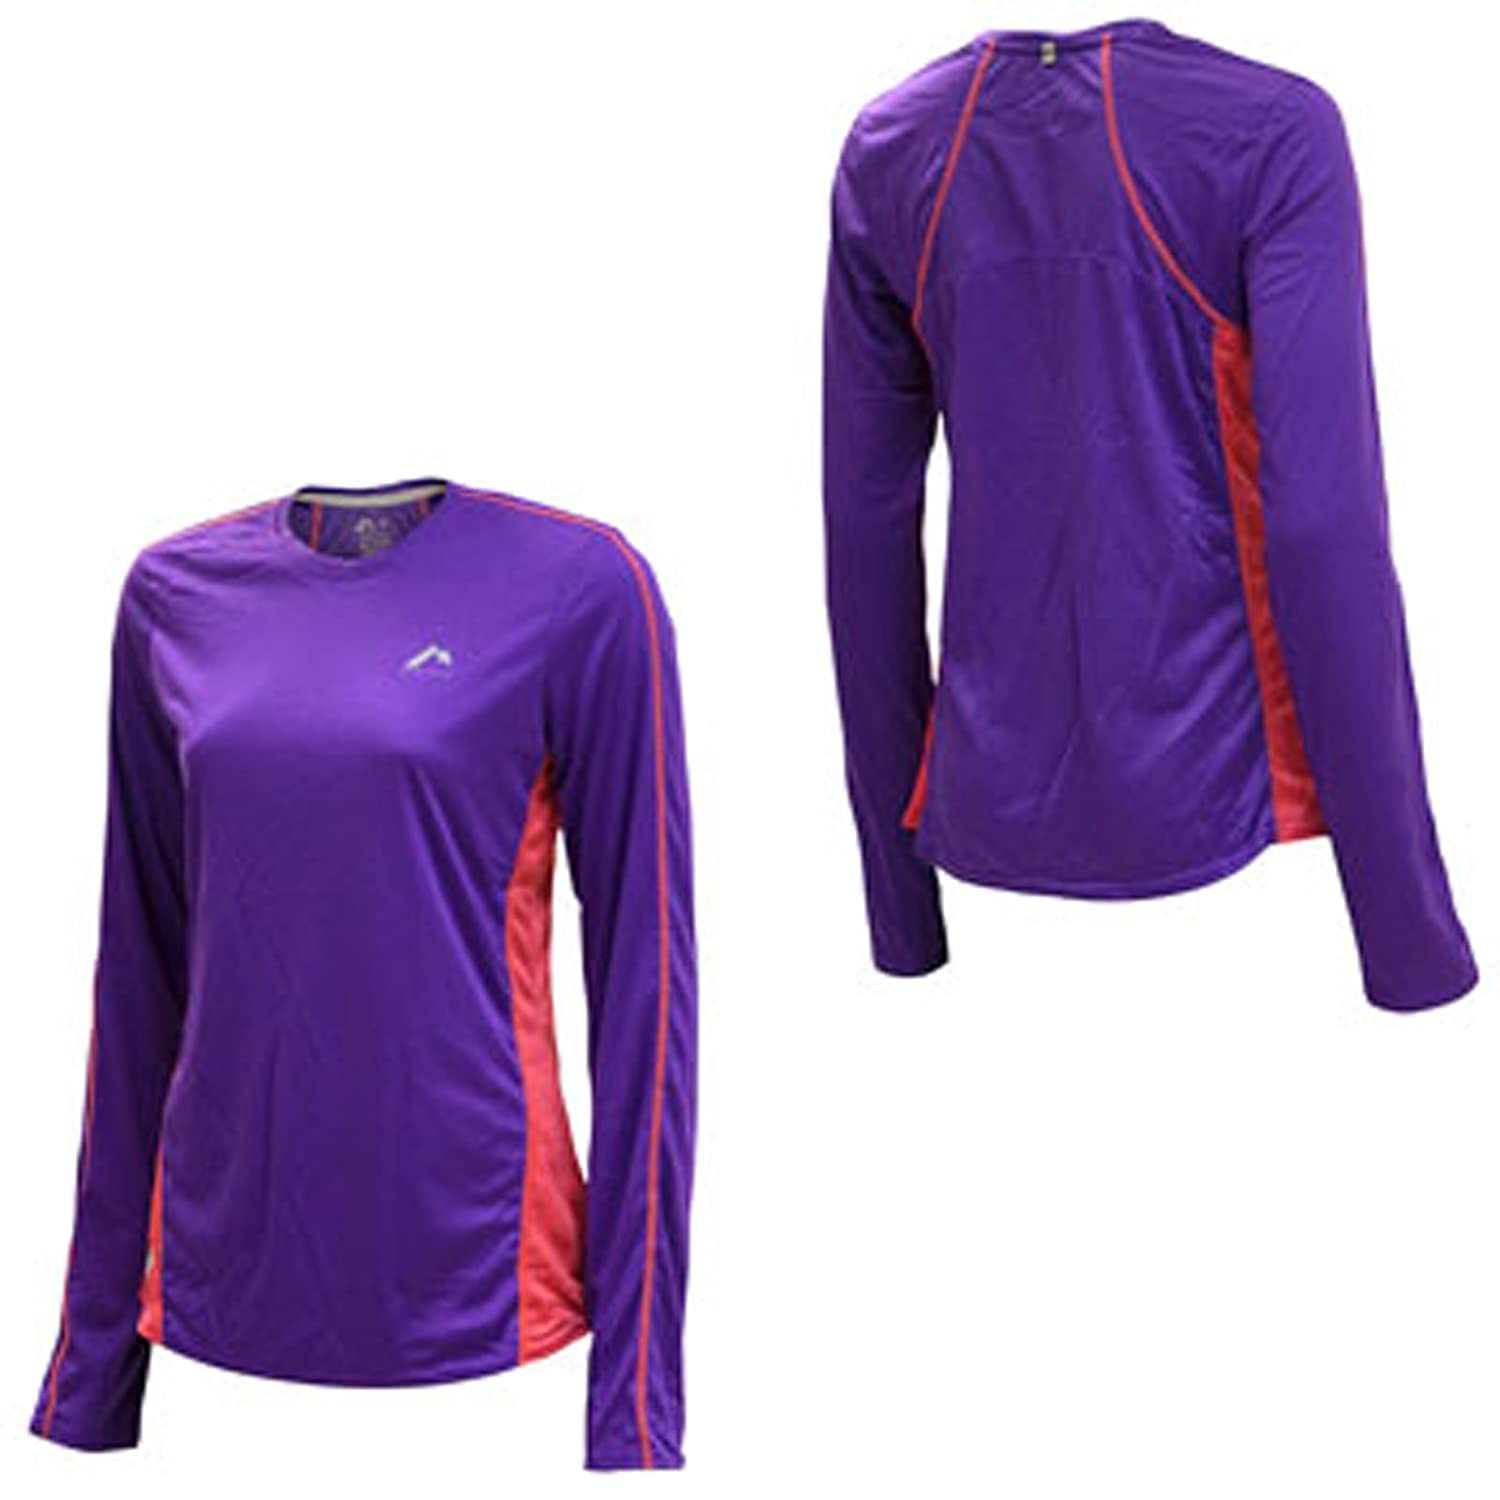 More Mile Womens / Ladies Long Sleeve Running Gym Top T-Shirt MM1691/1692